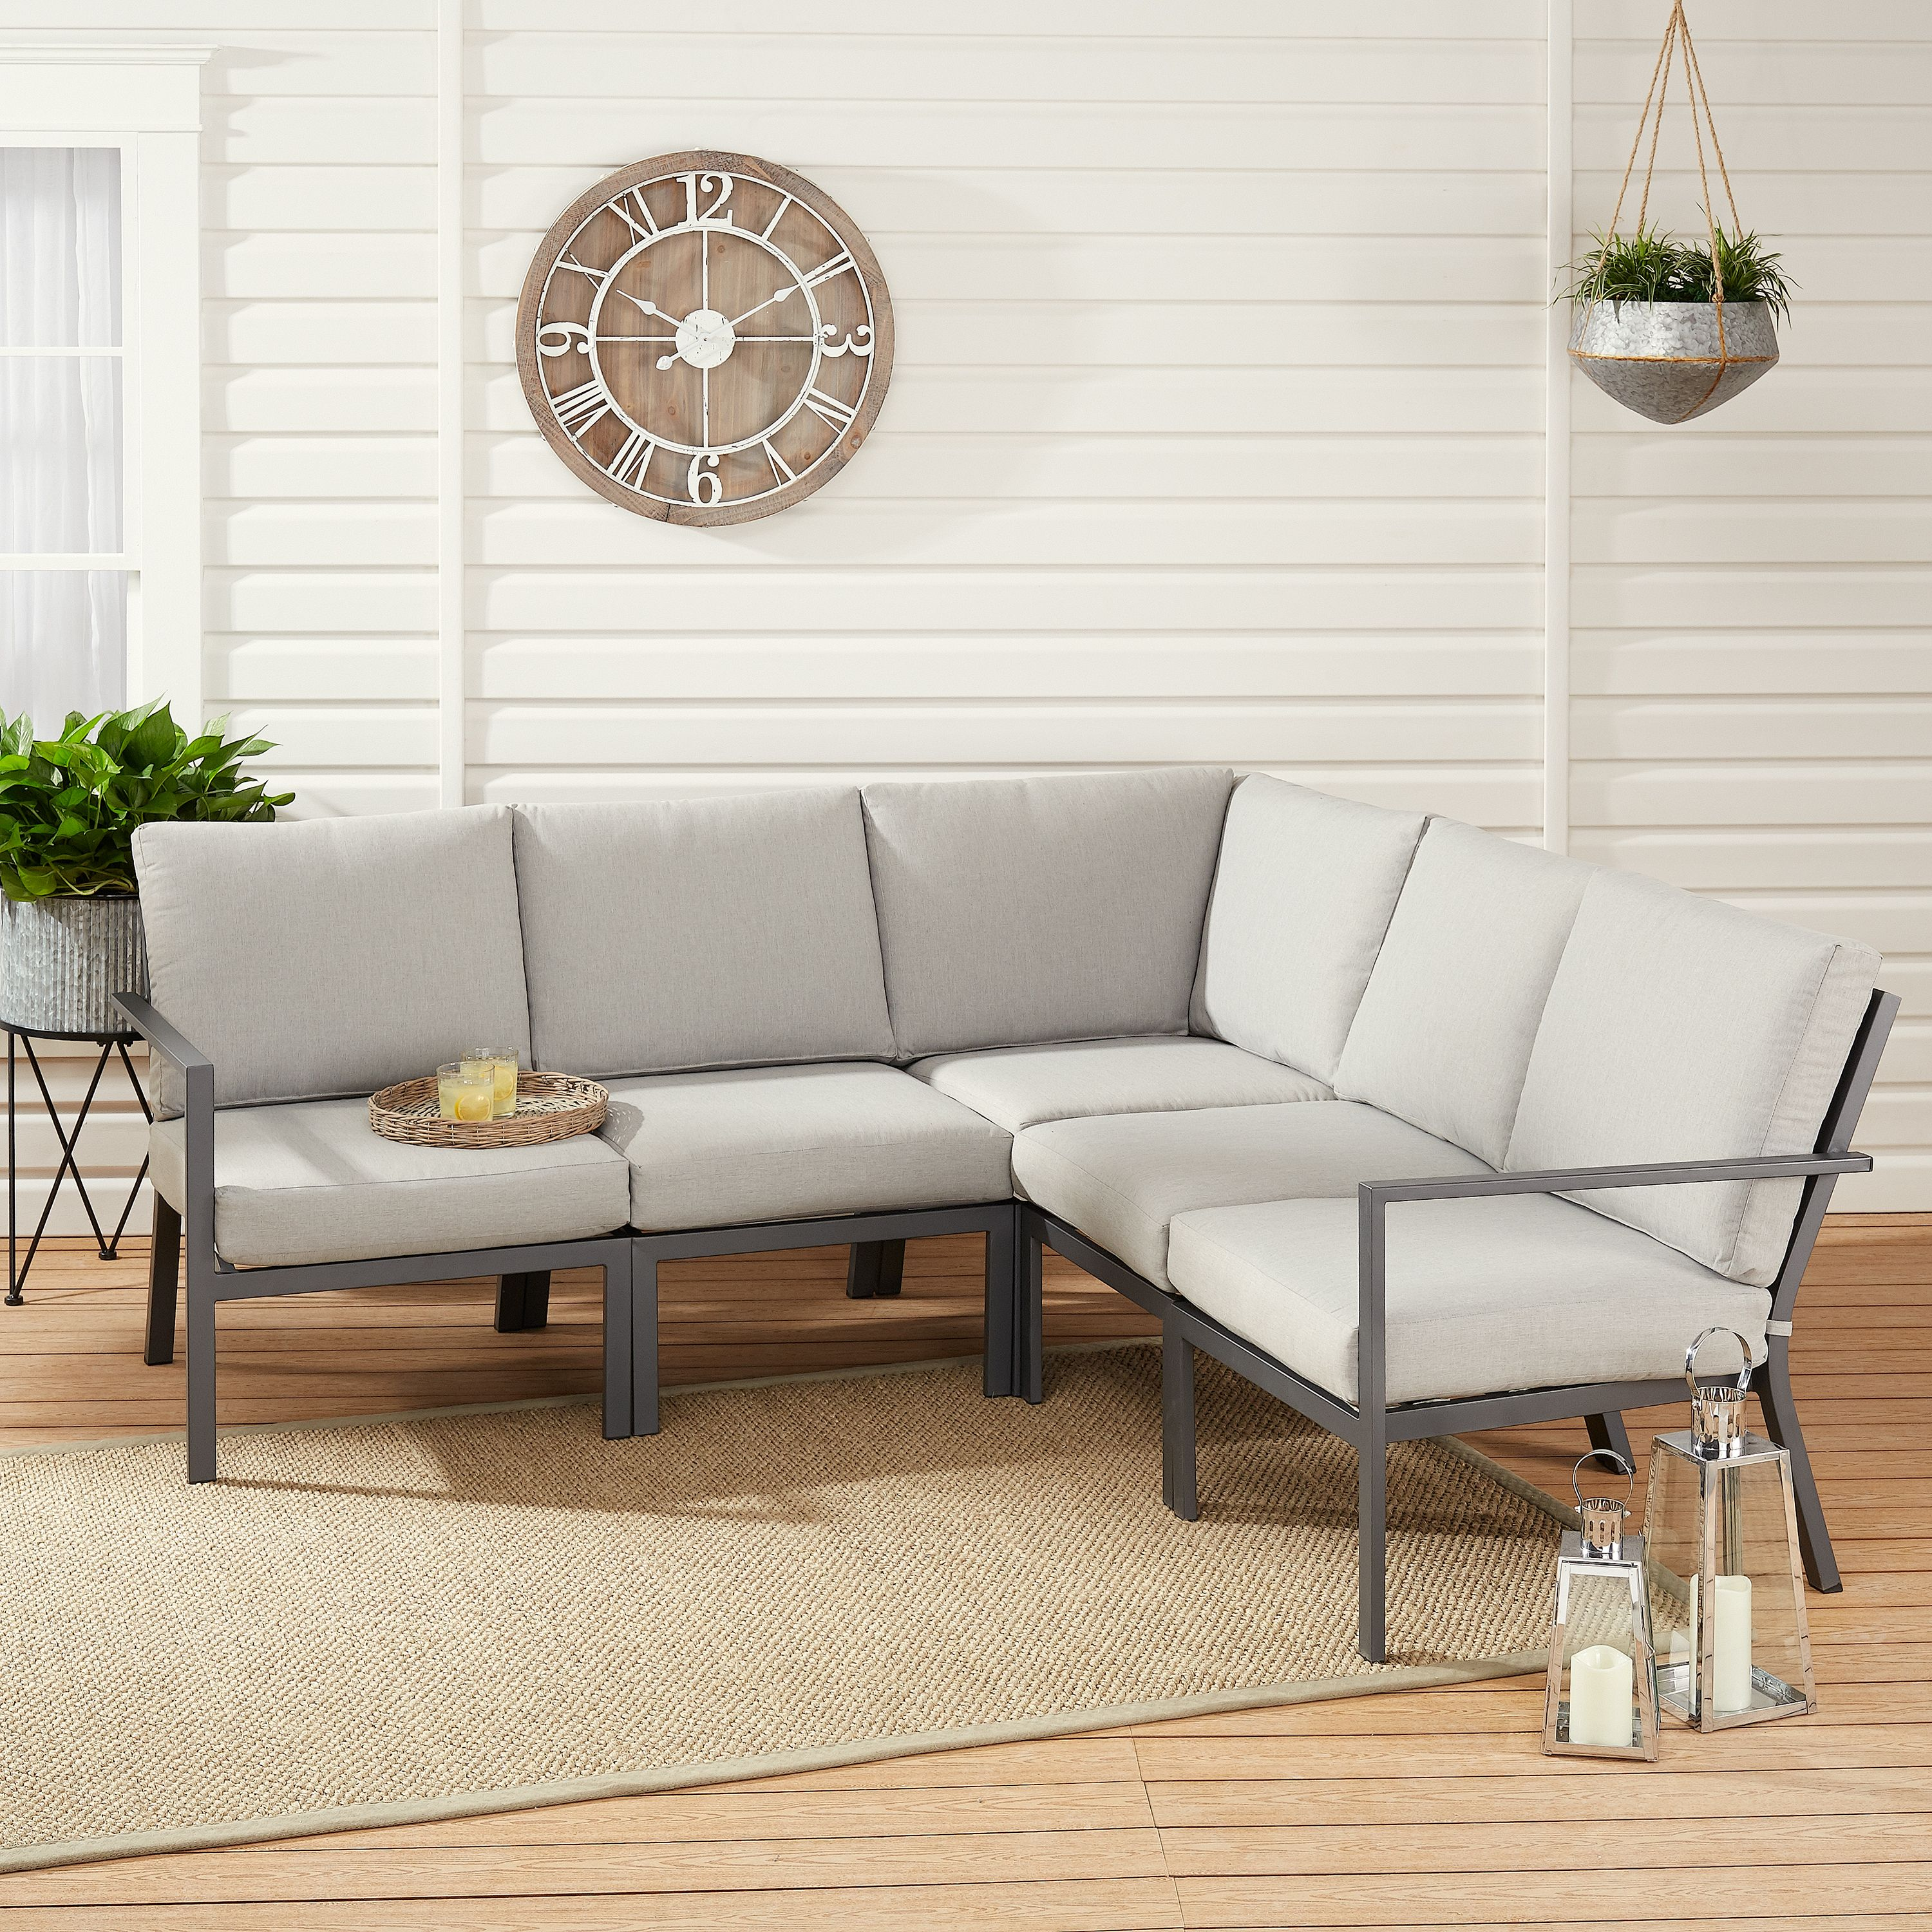 Mainstays Neste Ridge 5 Piece Patio Sectional Set With Gray